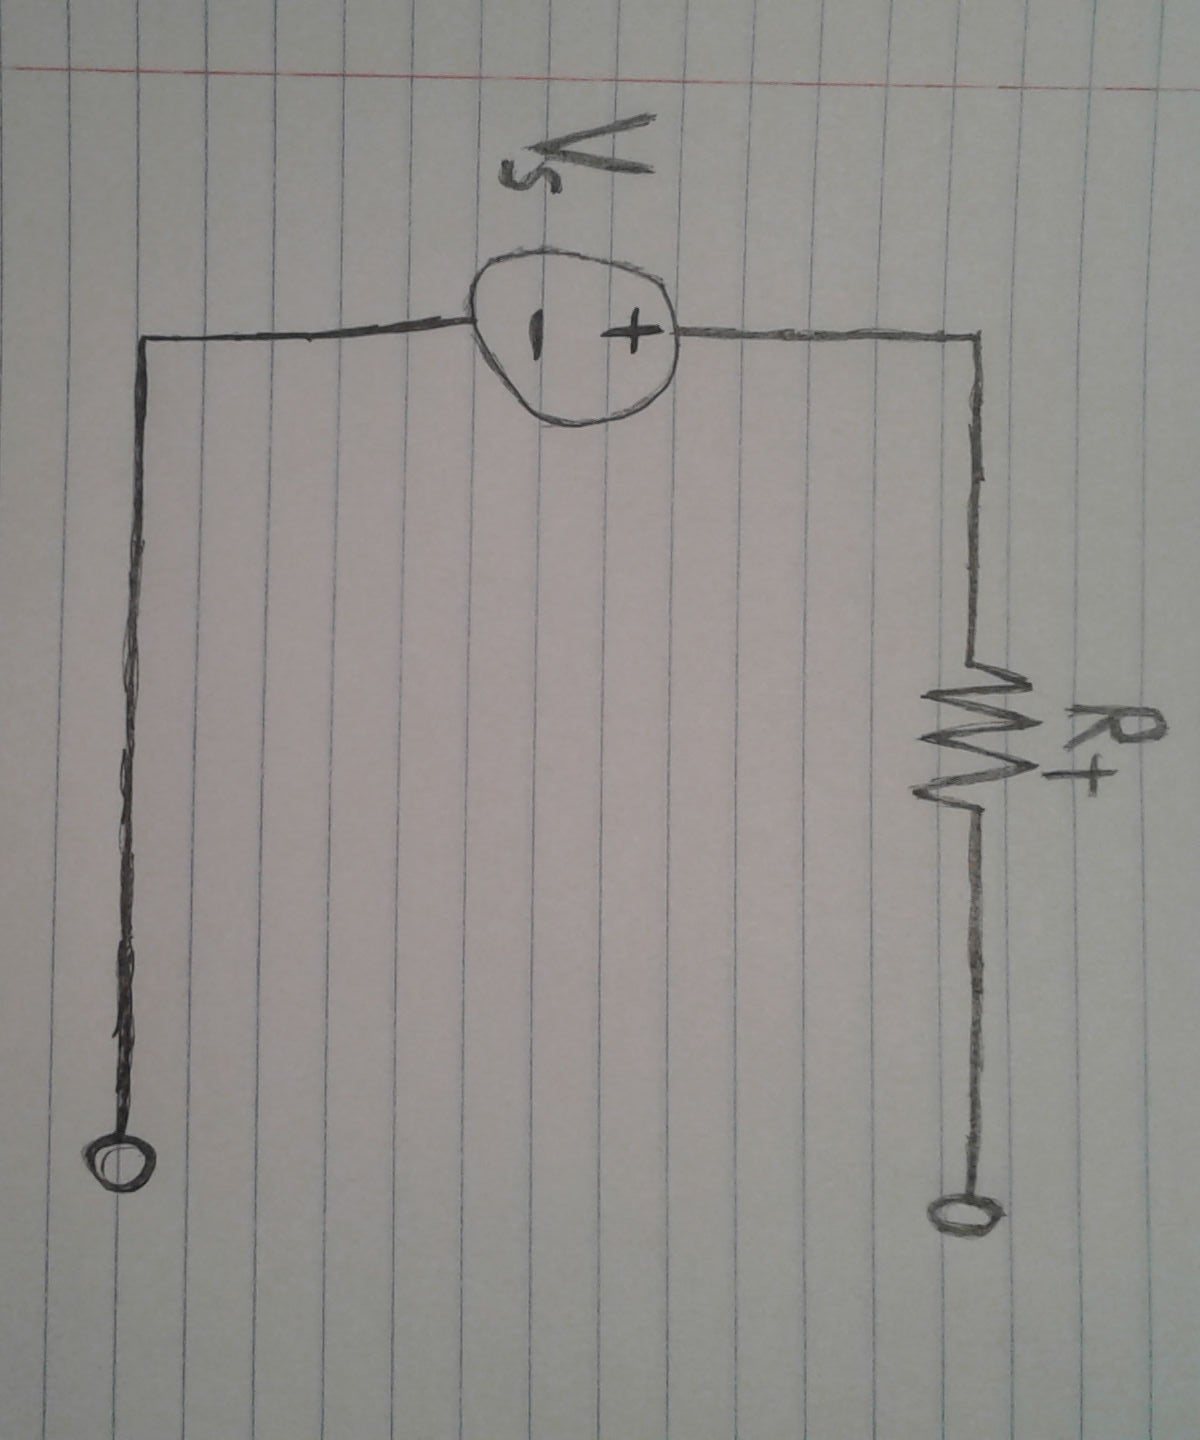 How To Zero Out Sources Find The Thvenin Equivalent Circuit 9 Circuits Current Controlled Voltage Source Indep Steps With Pictures